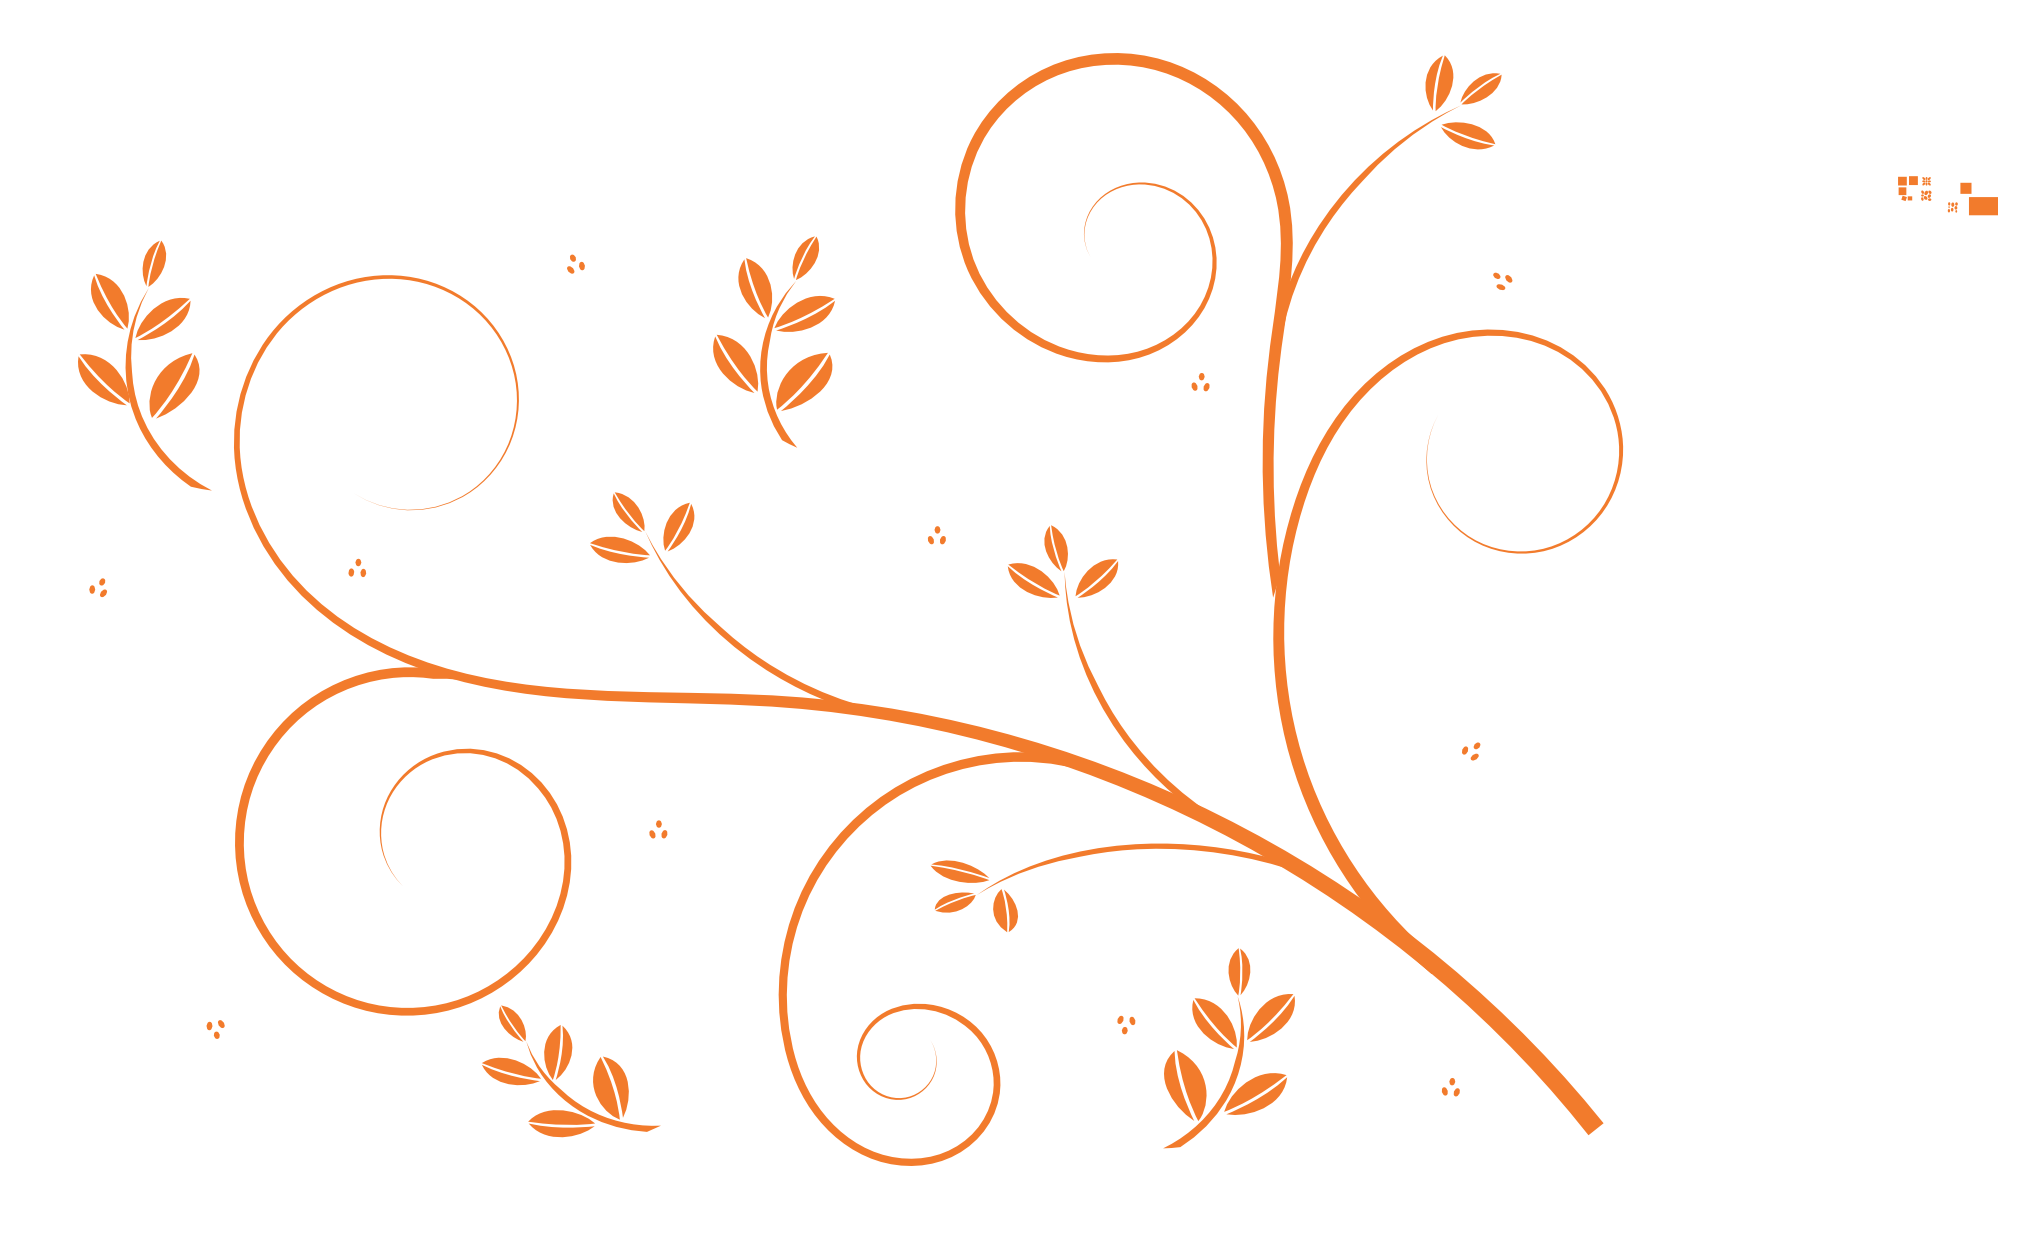 vines swirl png transparent image pngpix free clip art spring flowers and bees free clipart spring flowers and butterflies